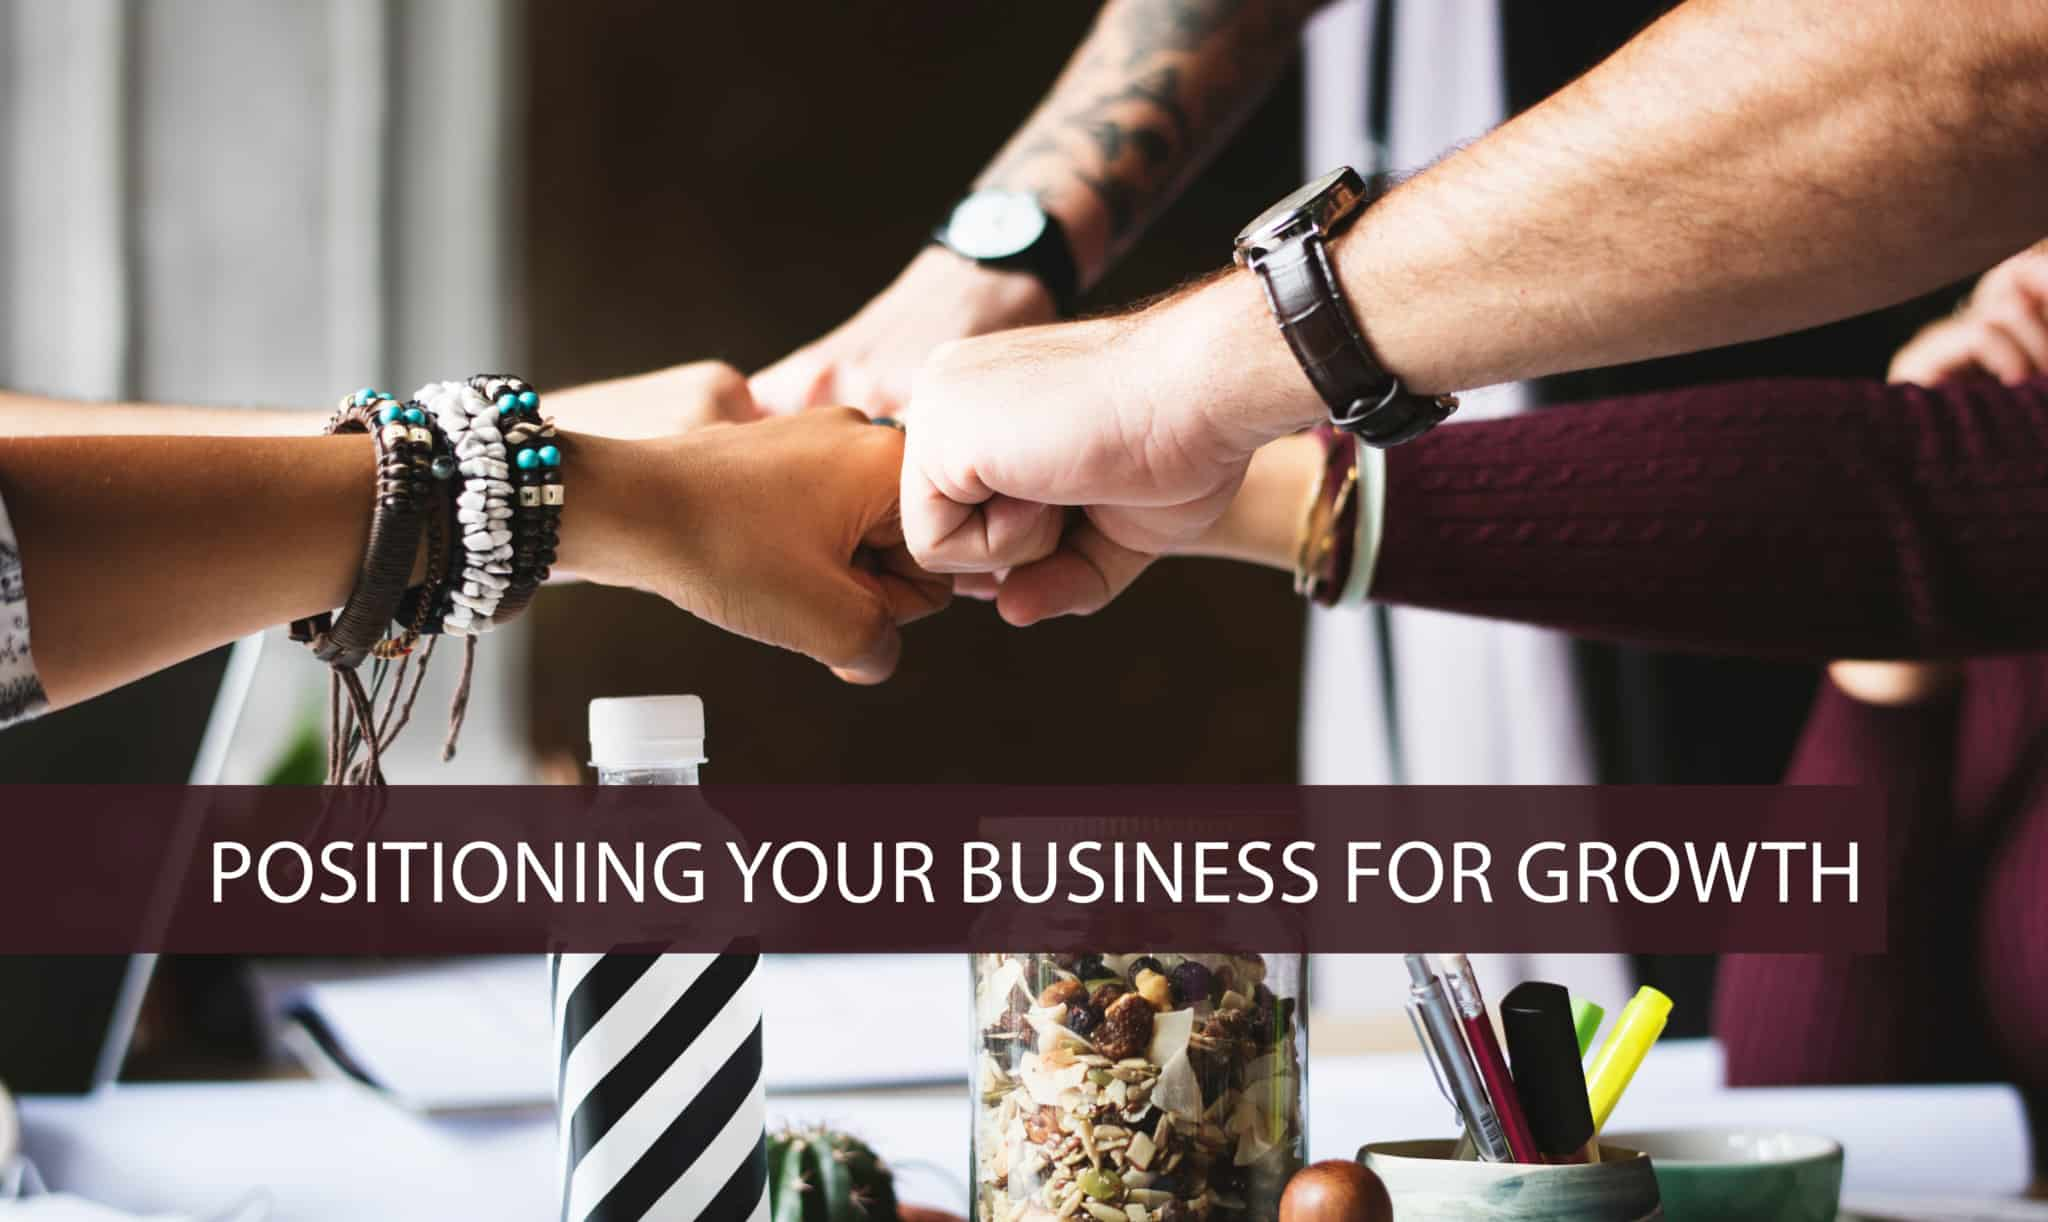 position your business for growth